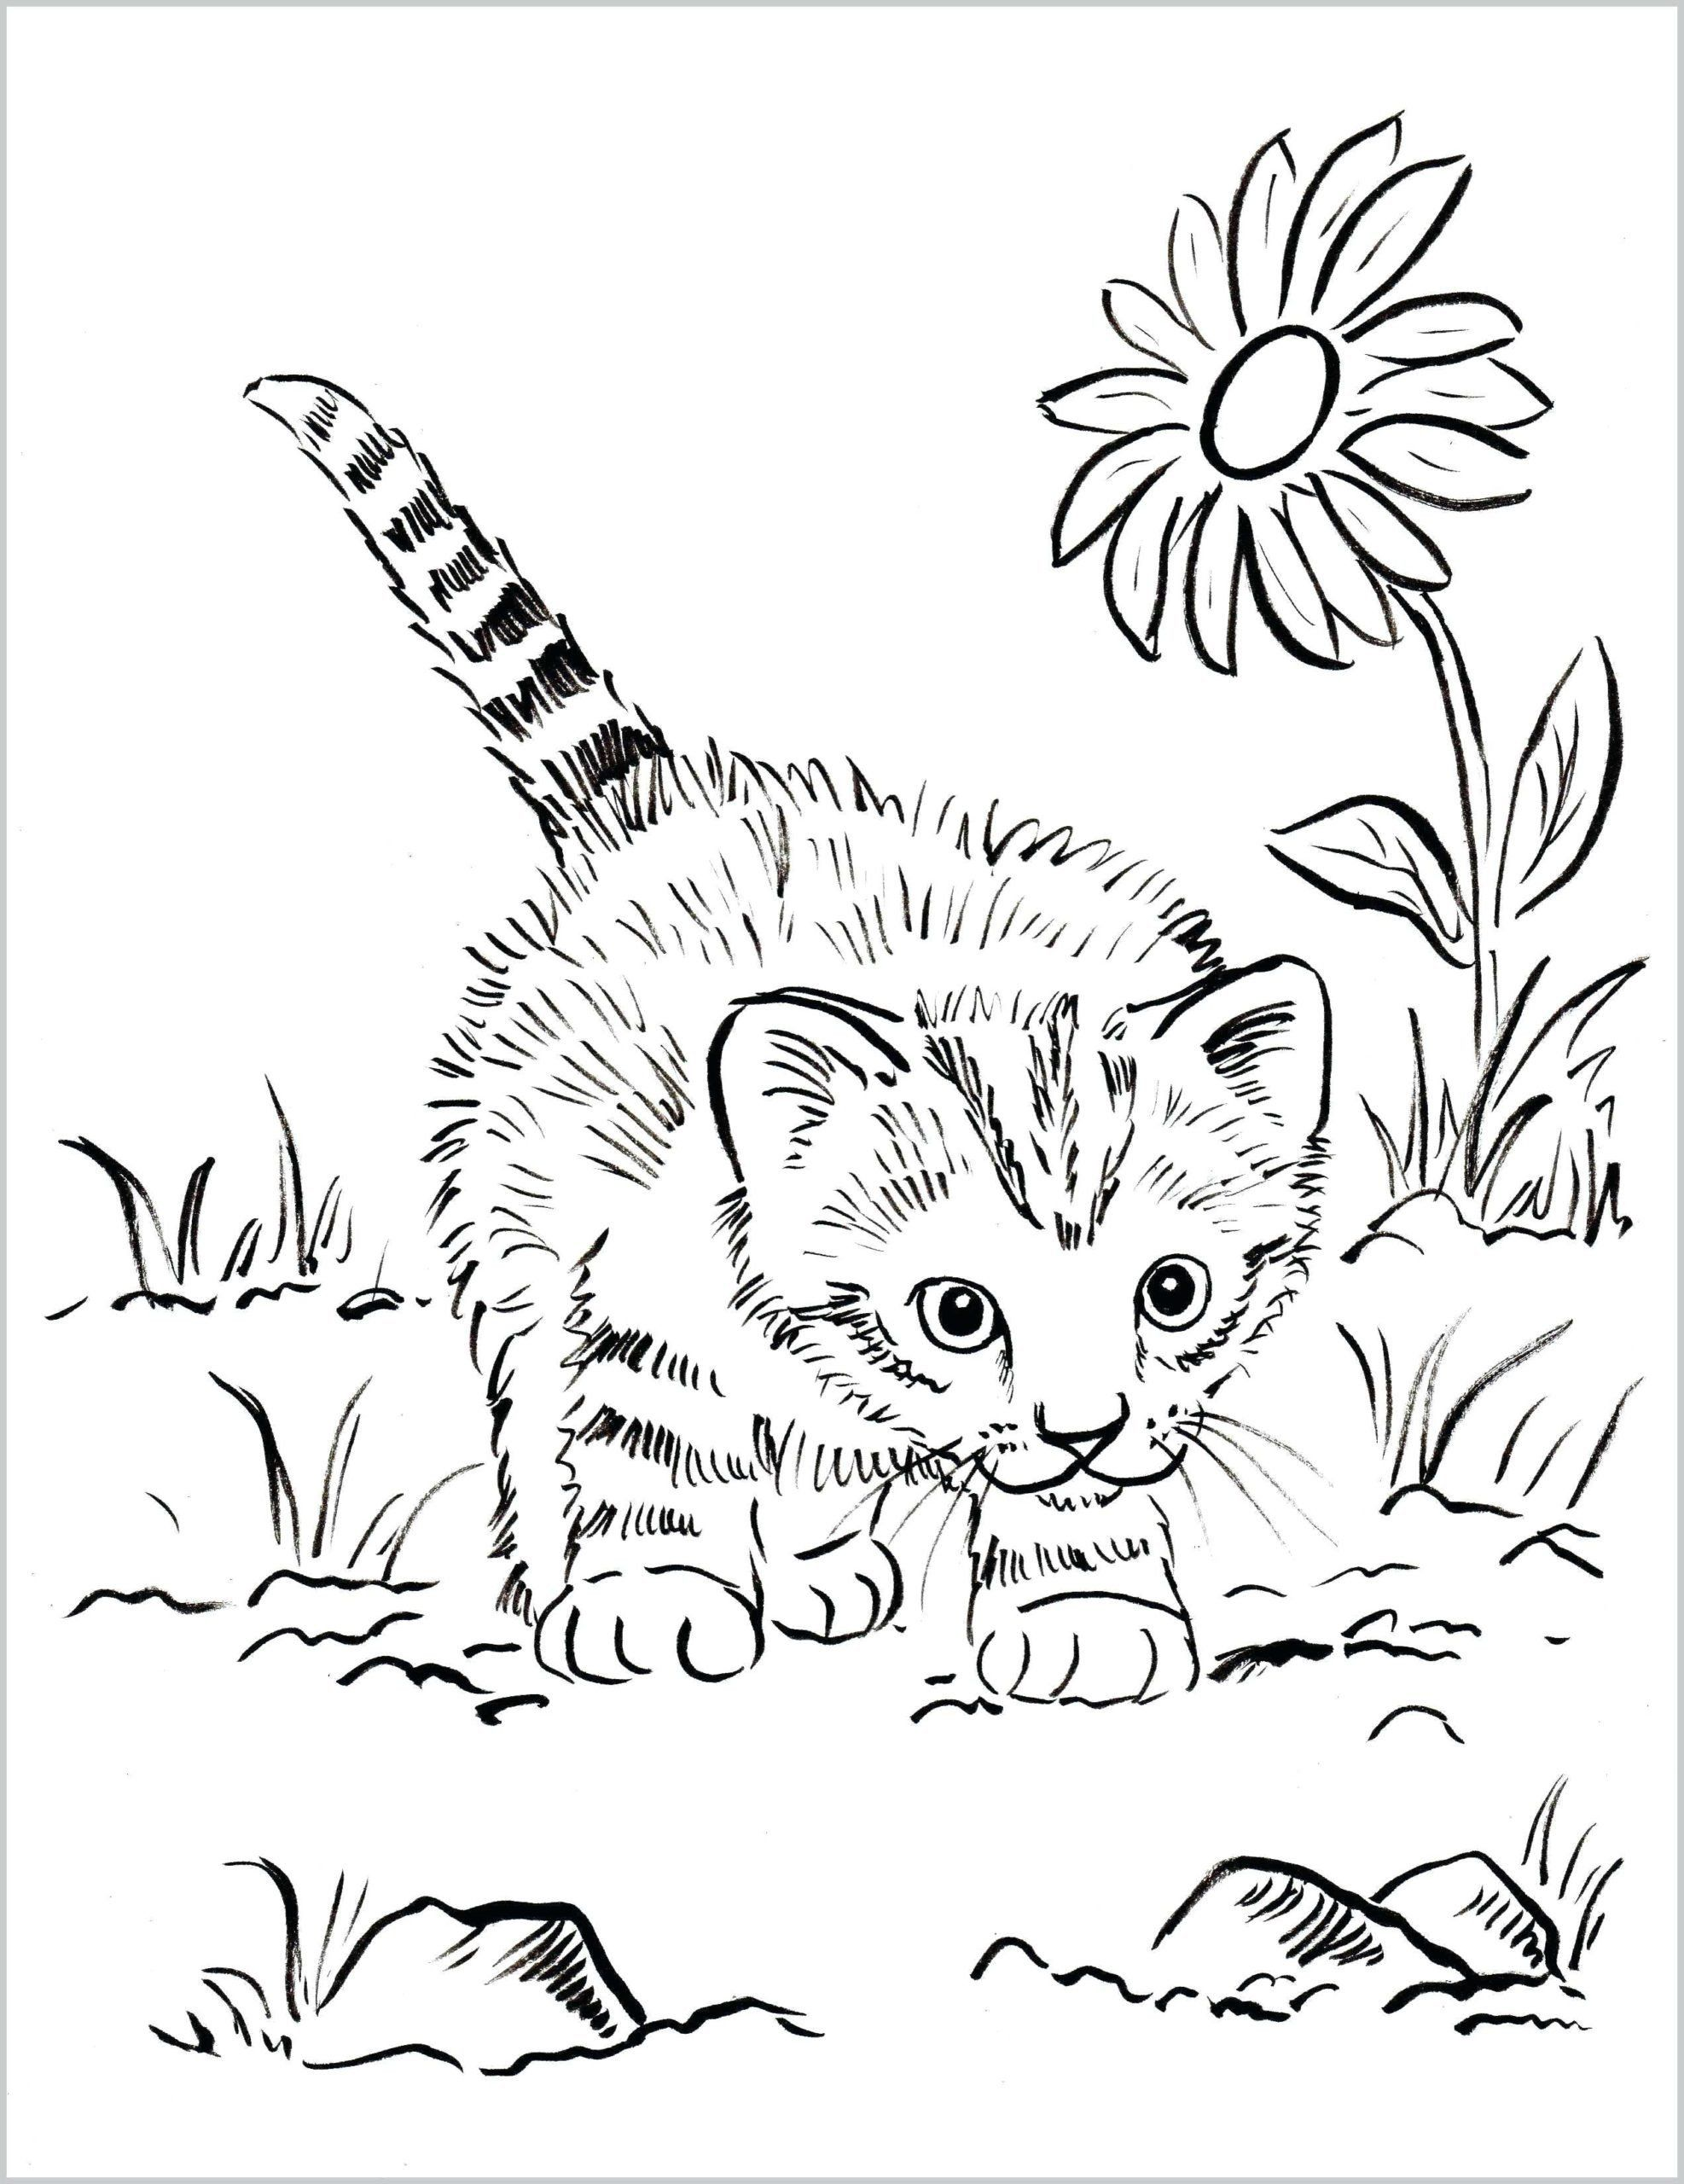 Kitten Coloring Pages For Kids Pages Coloring Excelent Kitten Coloring Book Page Clip Art Cat Coloring Book Puppy Coloring Pages Kittens Coloring